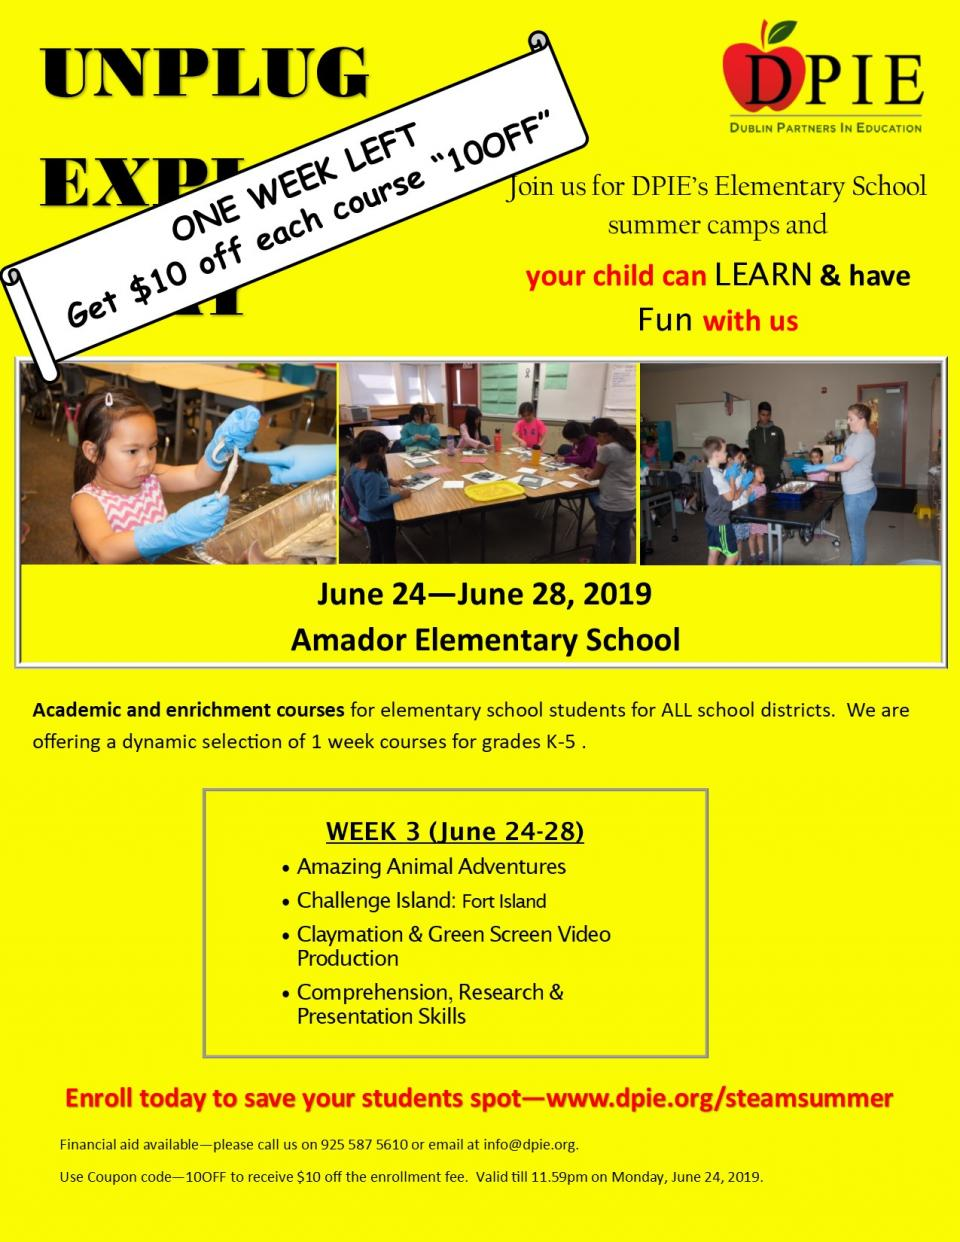 Amador Elementary Summer Camps